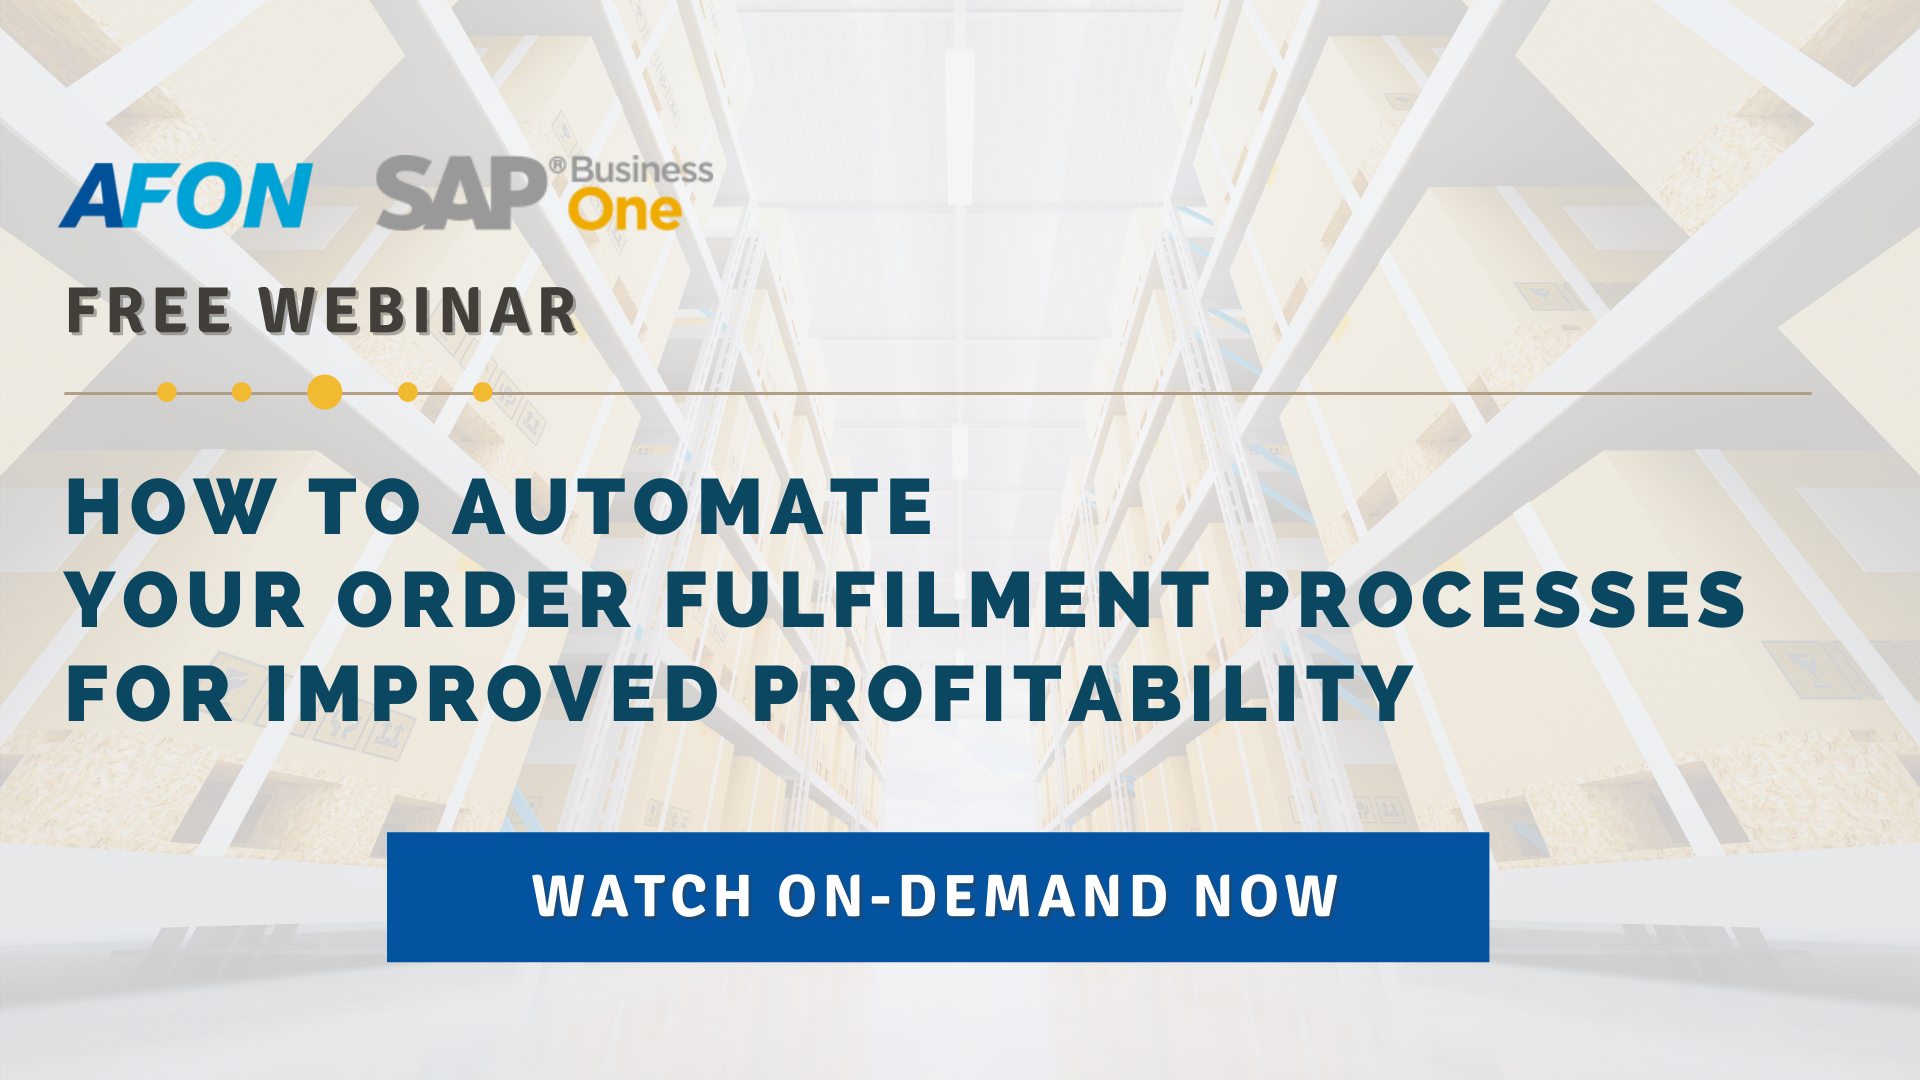 How To Automate Your Order Fulfilment Processes For Improved Profitability Post Webinar Video